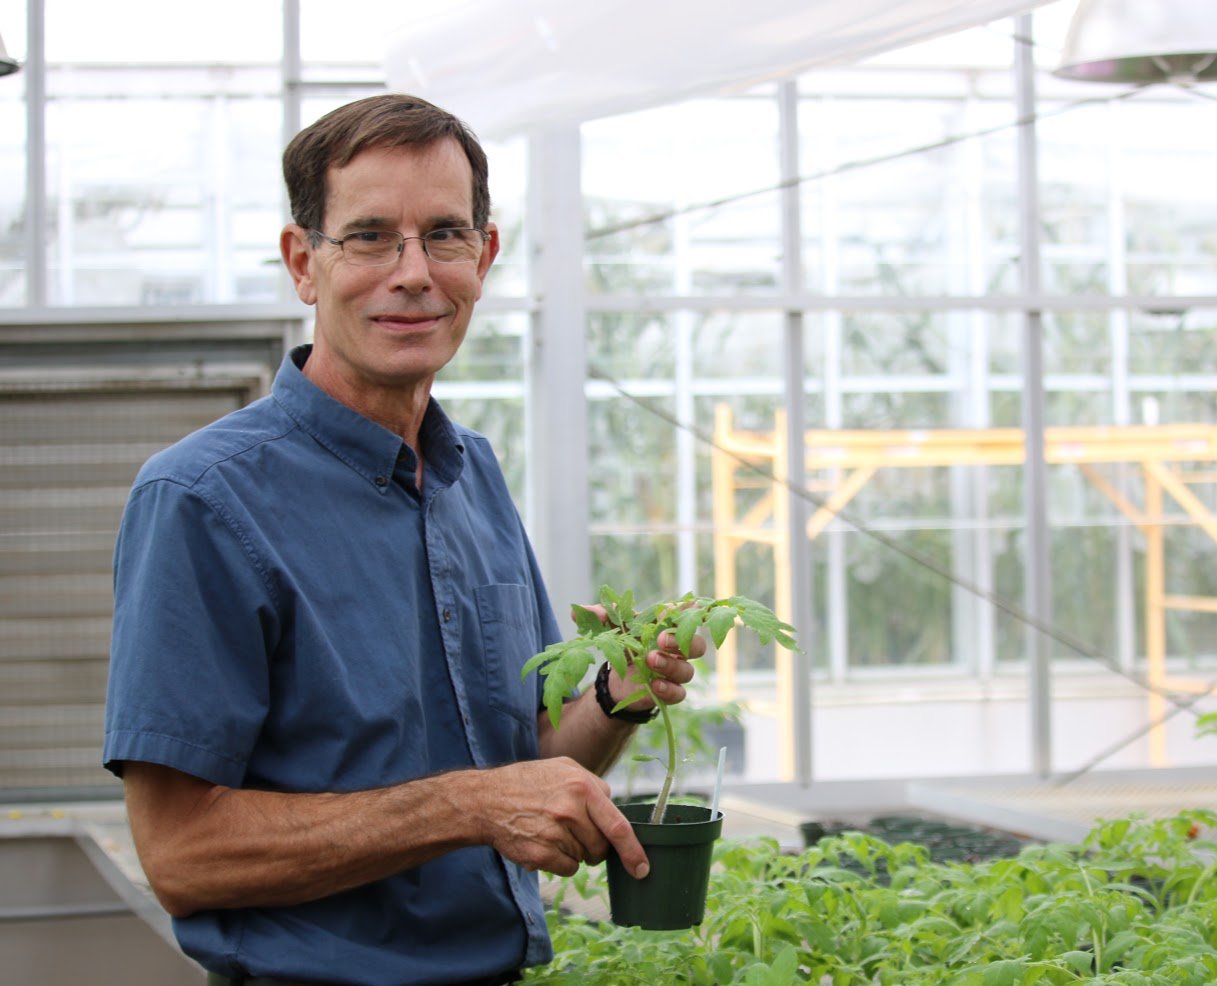 Dr. Joseph Kleopper, professor of plant pathology, holds a plant in a greenhouse.